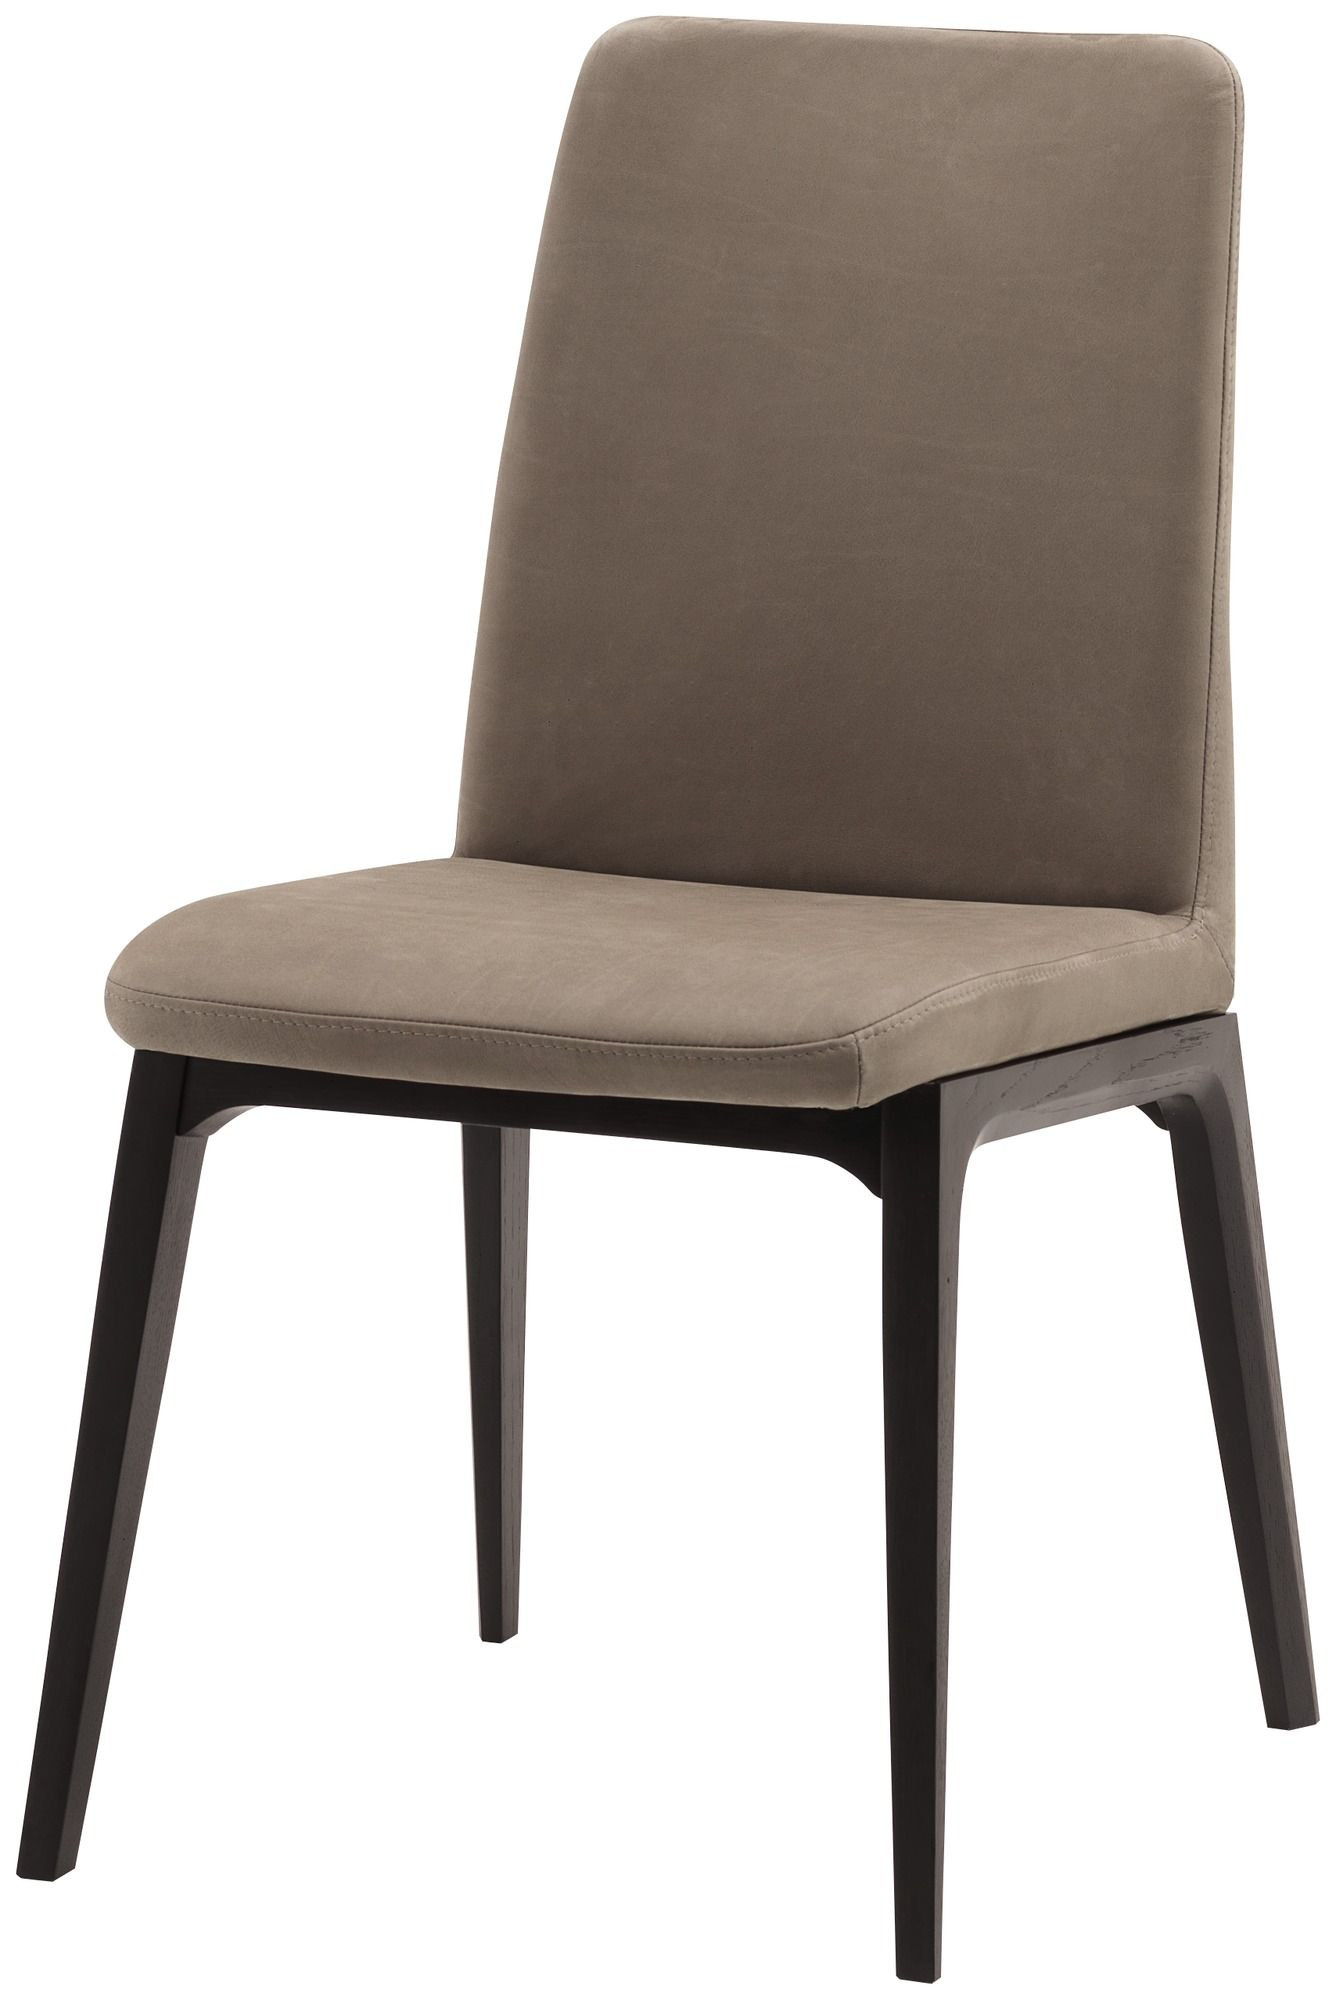 Sillas de comedor  BoConcept  Furniture  Dining chairs